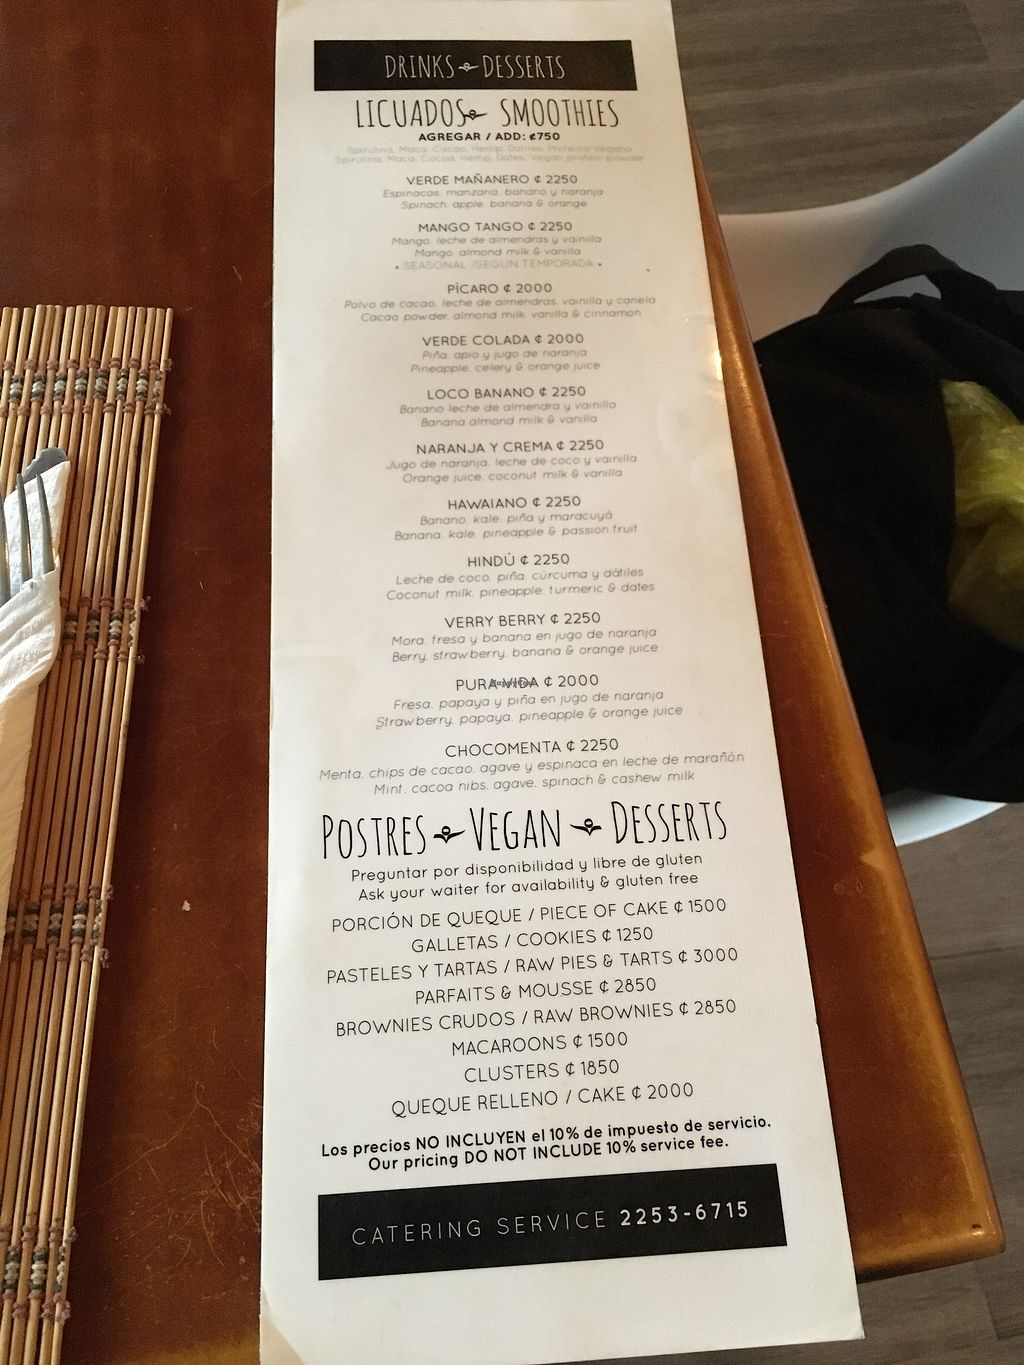 """Photo of Mantras Veggie Cafe and Tea House  by <a href=""""/members/profile/Daisygal168"""">Daisygal168</a> <br/>Menu <br/> September 22, 2017  - <a href='/contact/abuse/image/18650/307203'>Report</a>"""